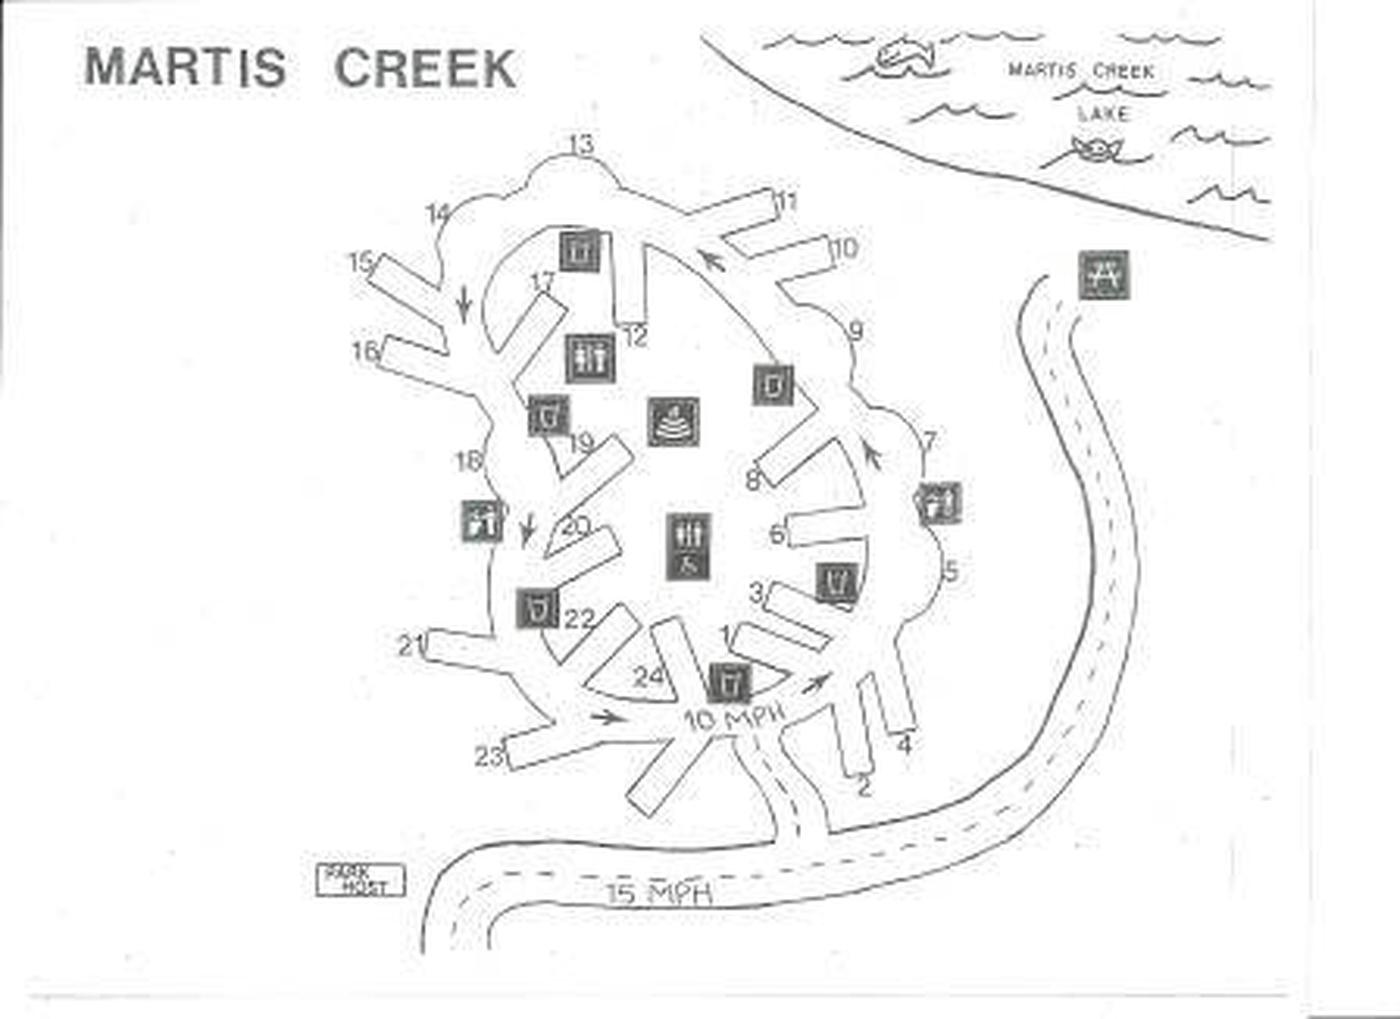 Alpine Meadow CampgroundAlpine Meadow Campground map showing campsites by site number.